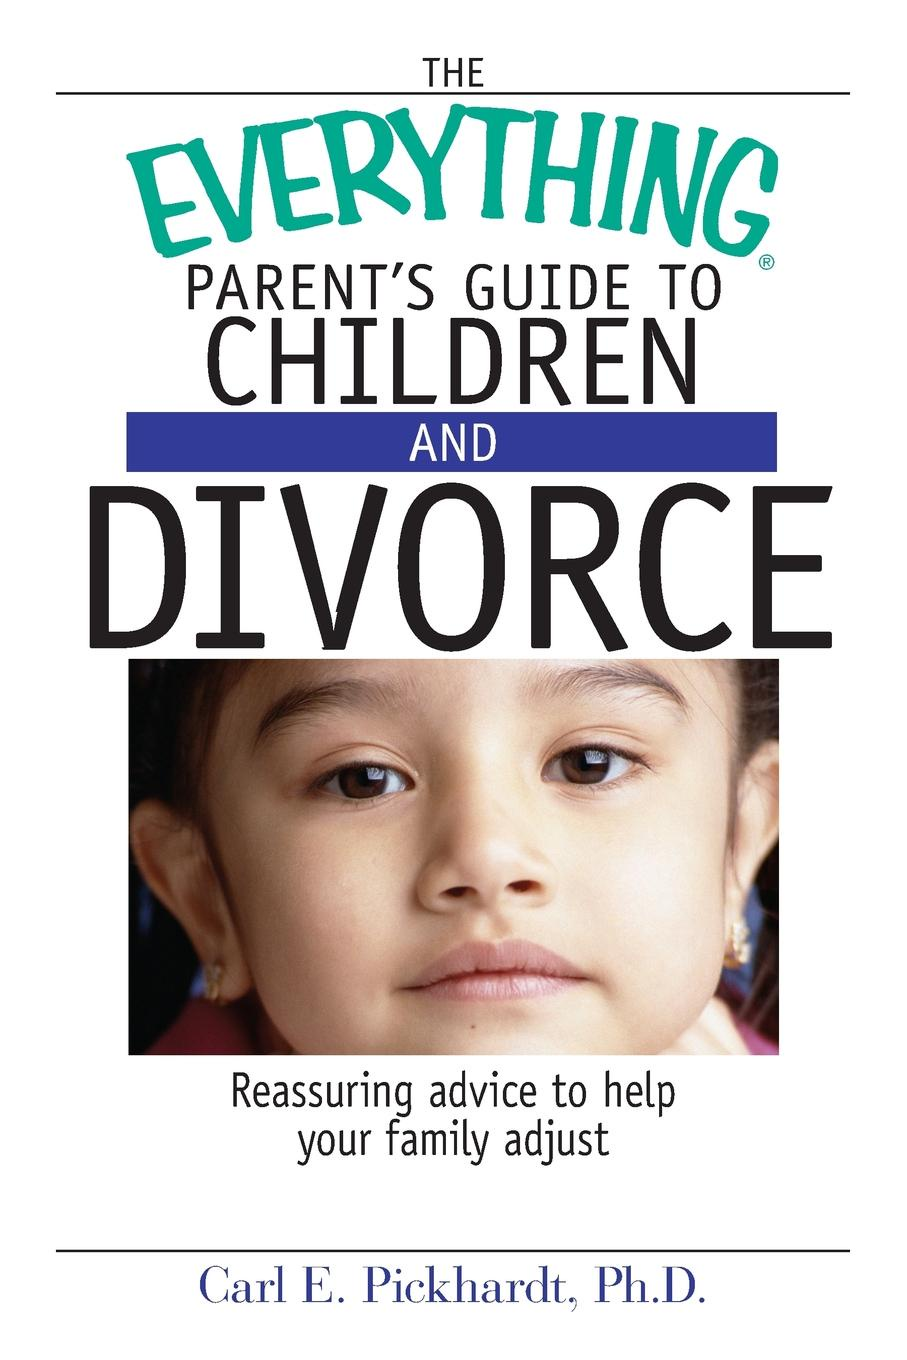 Carl E. Pickhardt The Everything Parent's Guide to Children and Divorce. Reassuring Advice to Help Your Family Adjust lois brenner robert stein getting your share a woman s guide to successful divorce strategies